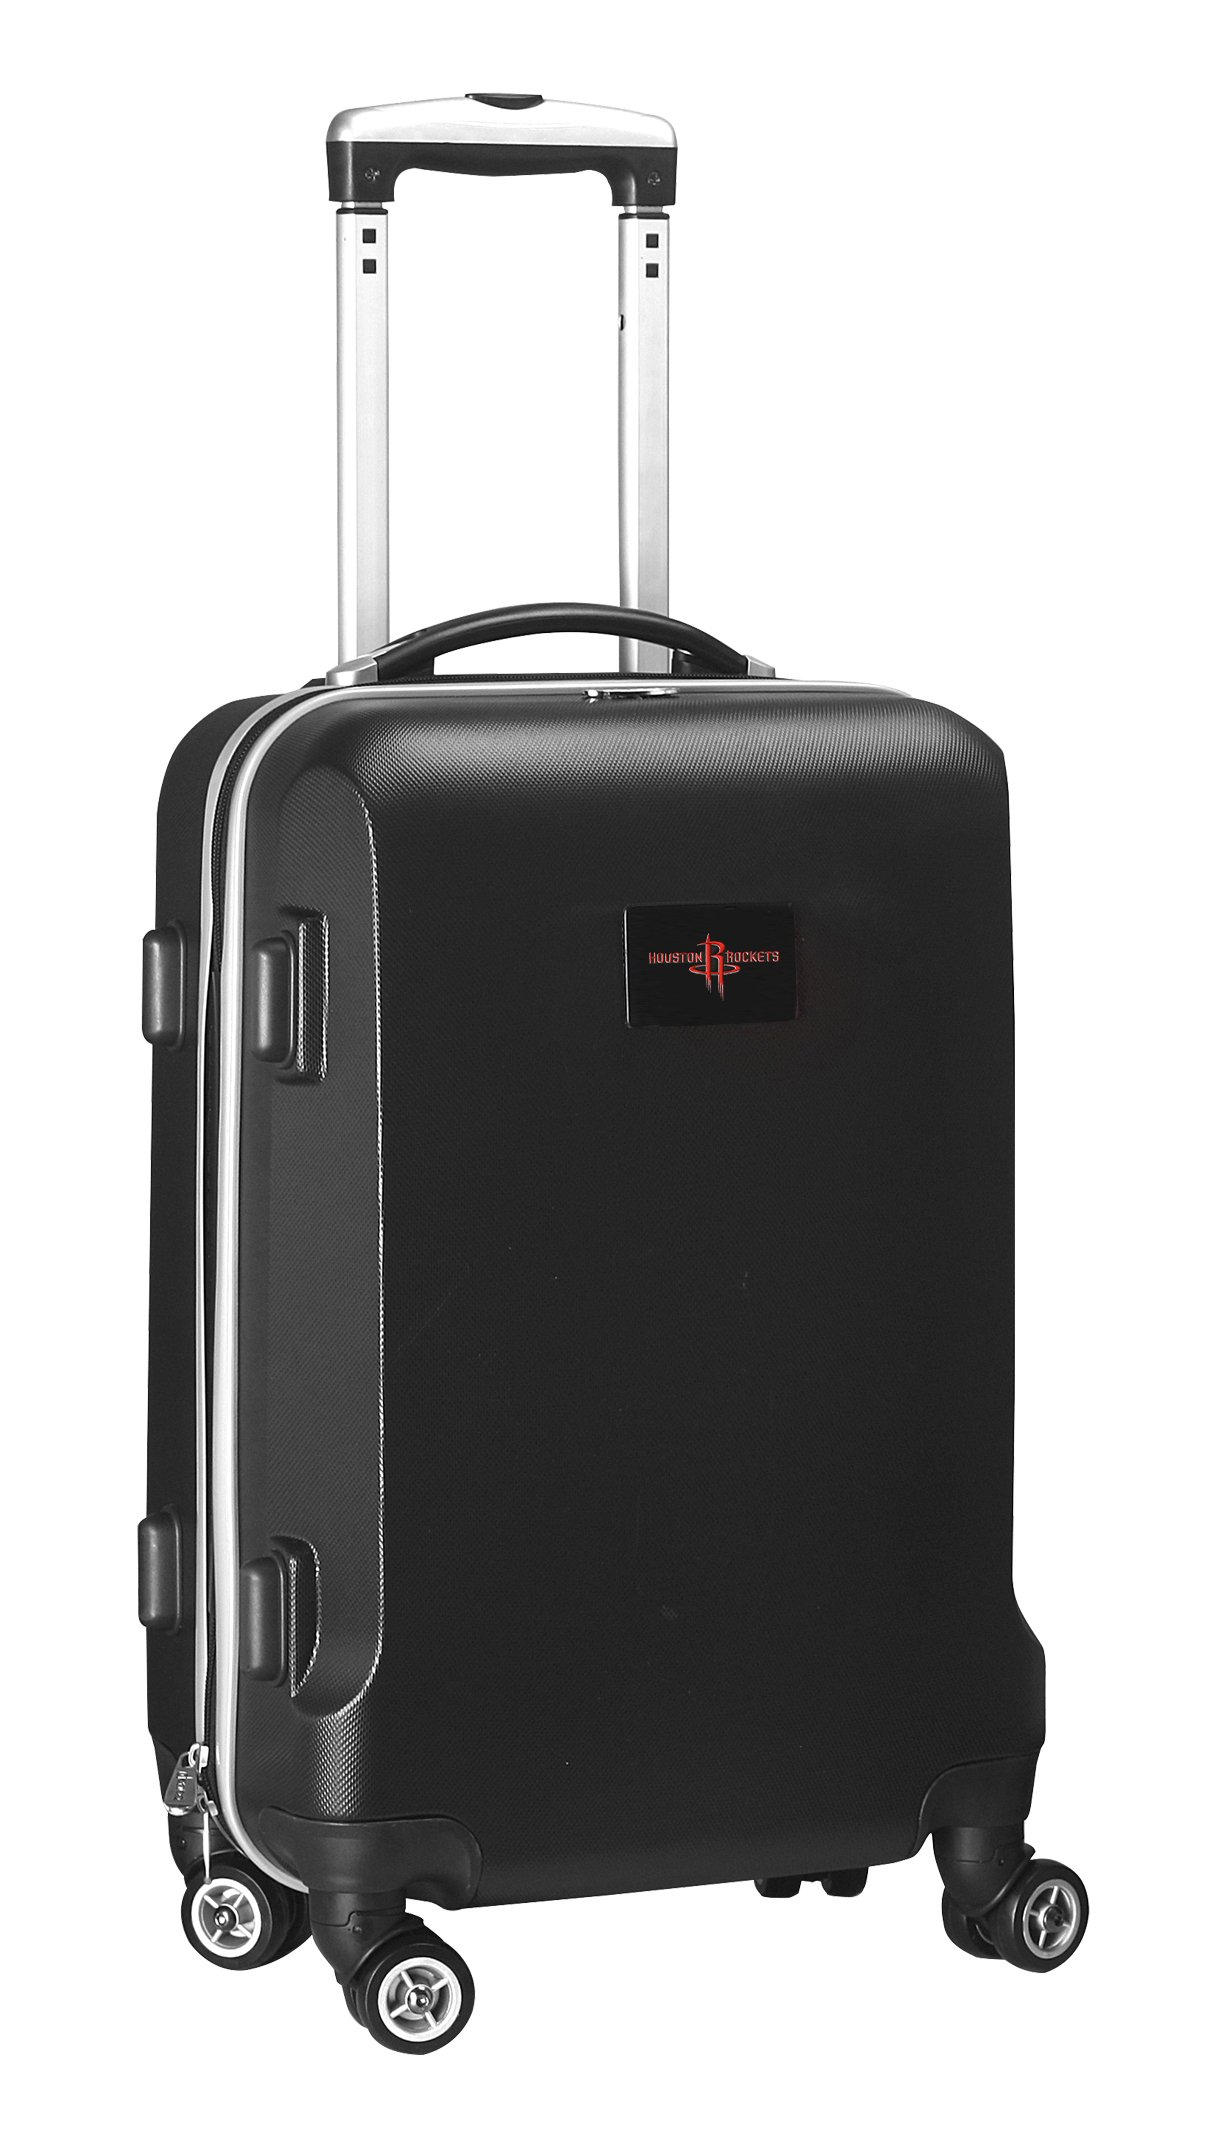 Denco NBA Houston Rockets Carry-On Hardcase Luggage Spinner, Black by Denco (Image #1)